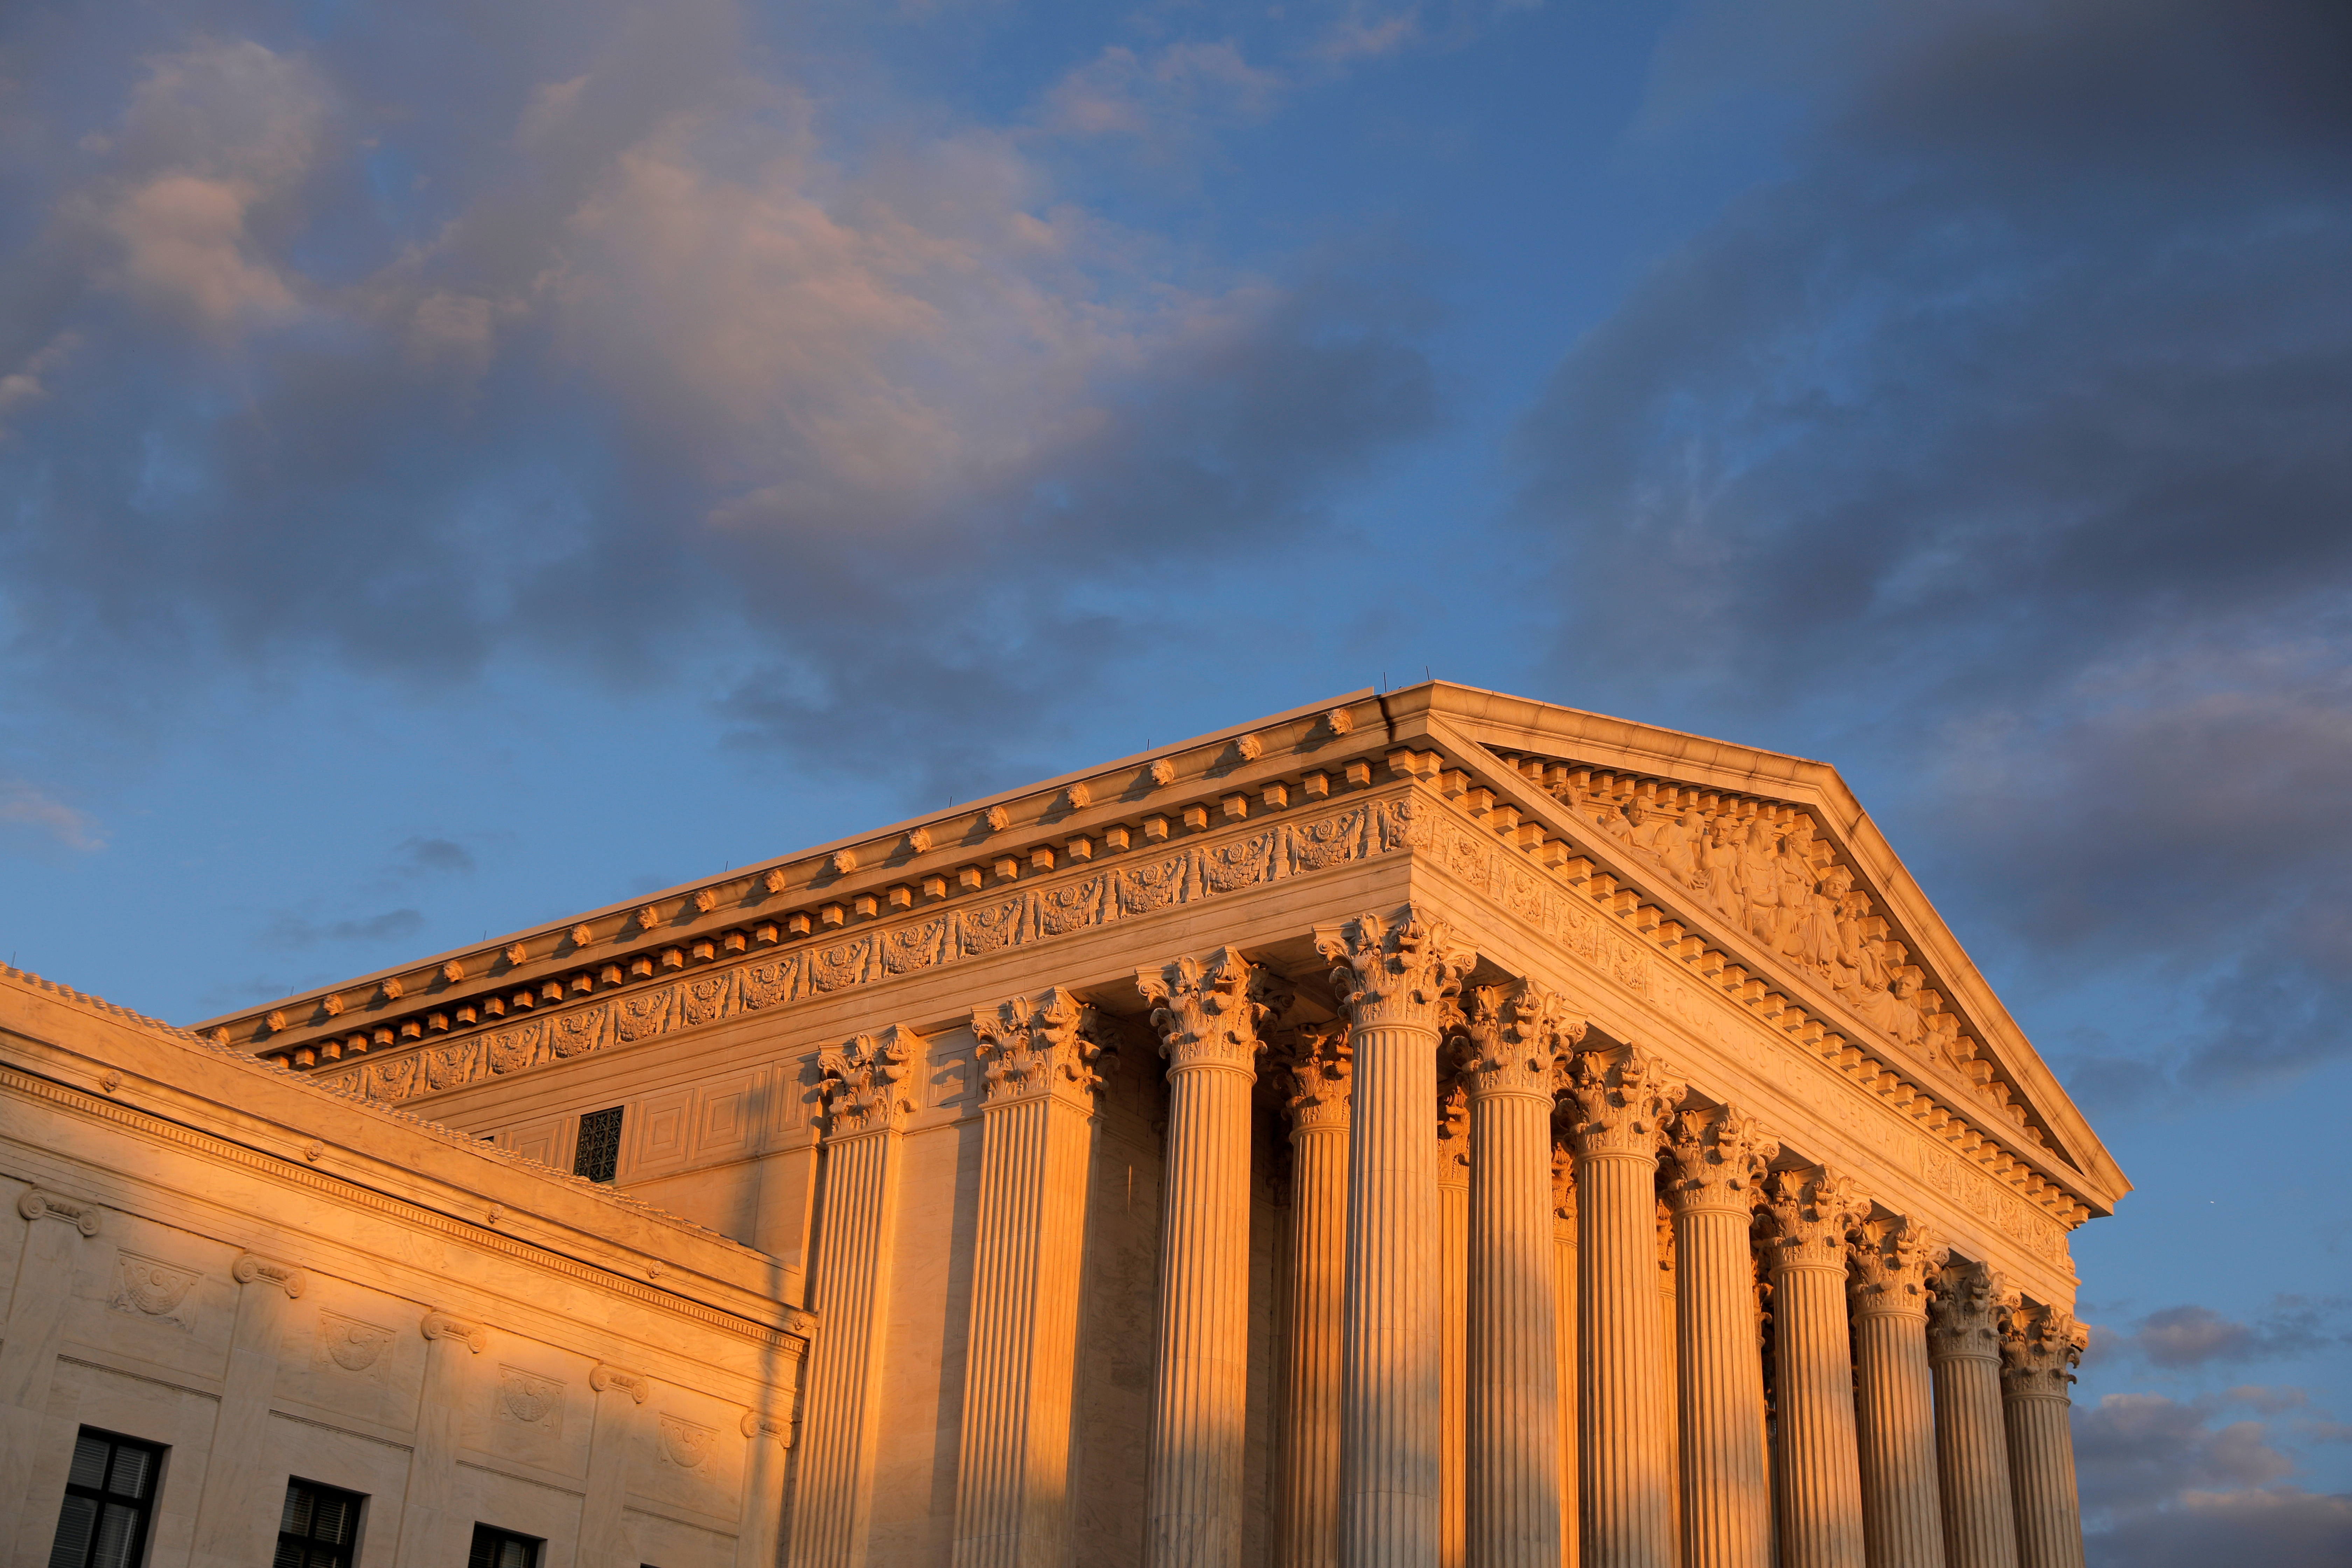 Light from the sunset shines on the United States Supreme Court Building in Washington, D.C.. REUTERS/Andrew Kelly